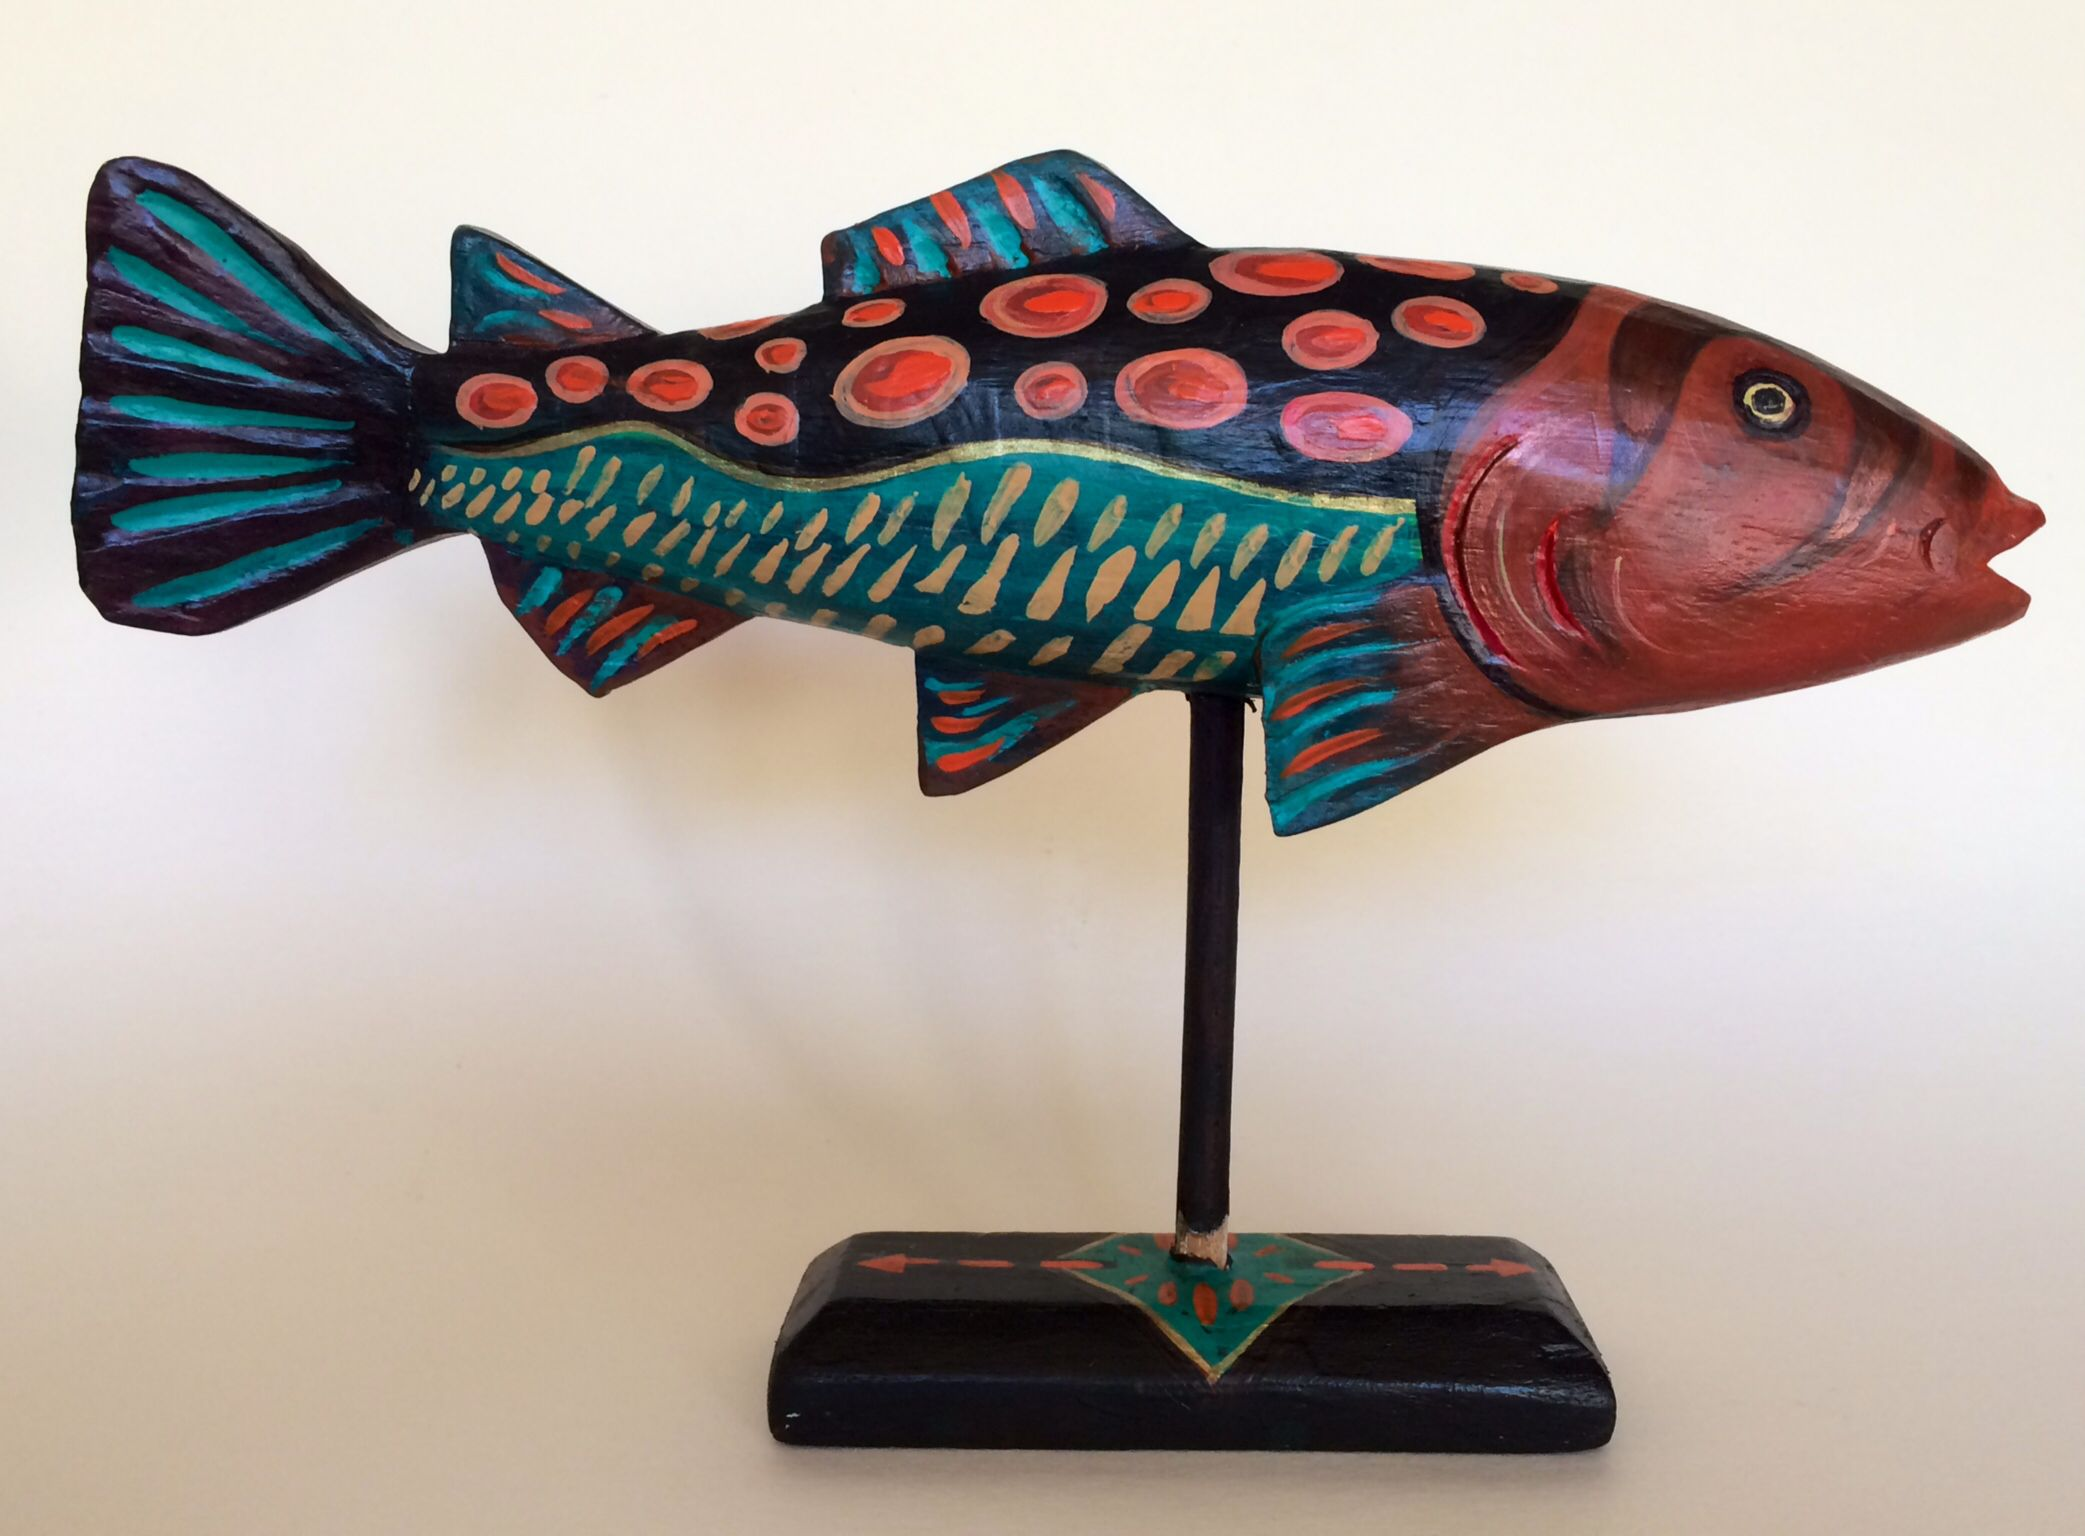 Coral Fish, Katy Bratun. Wood base, painted with acrylic paint. An easy fish form can be made with crumpled paper, smoothed over with flat paper and masking tape. Then paper mâché, about 3 or 4 layers. Then paint when it is dry with acrylic. Buttons or beads glued on for eyes...